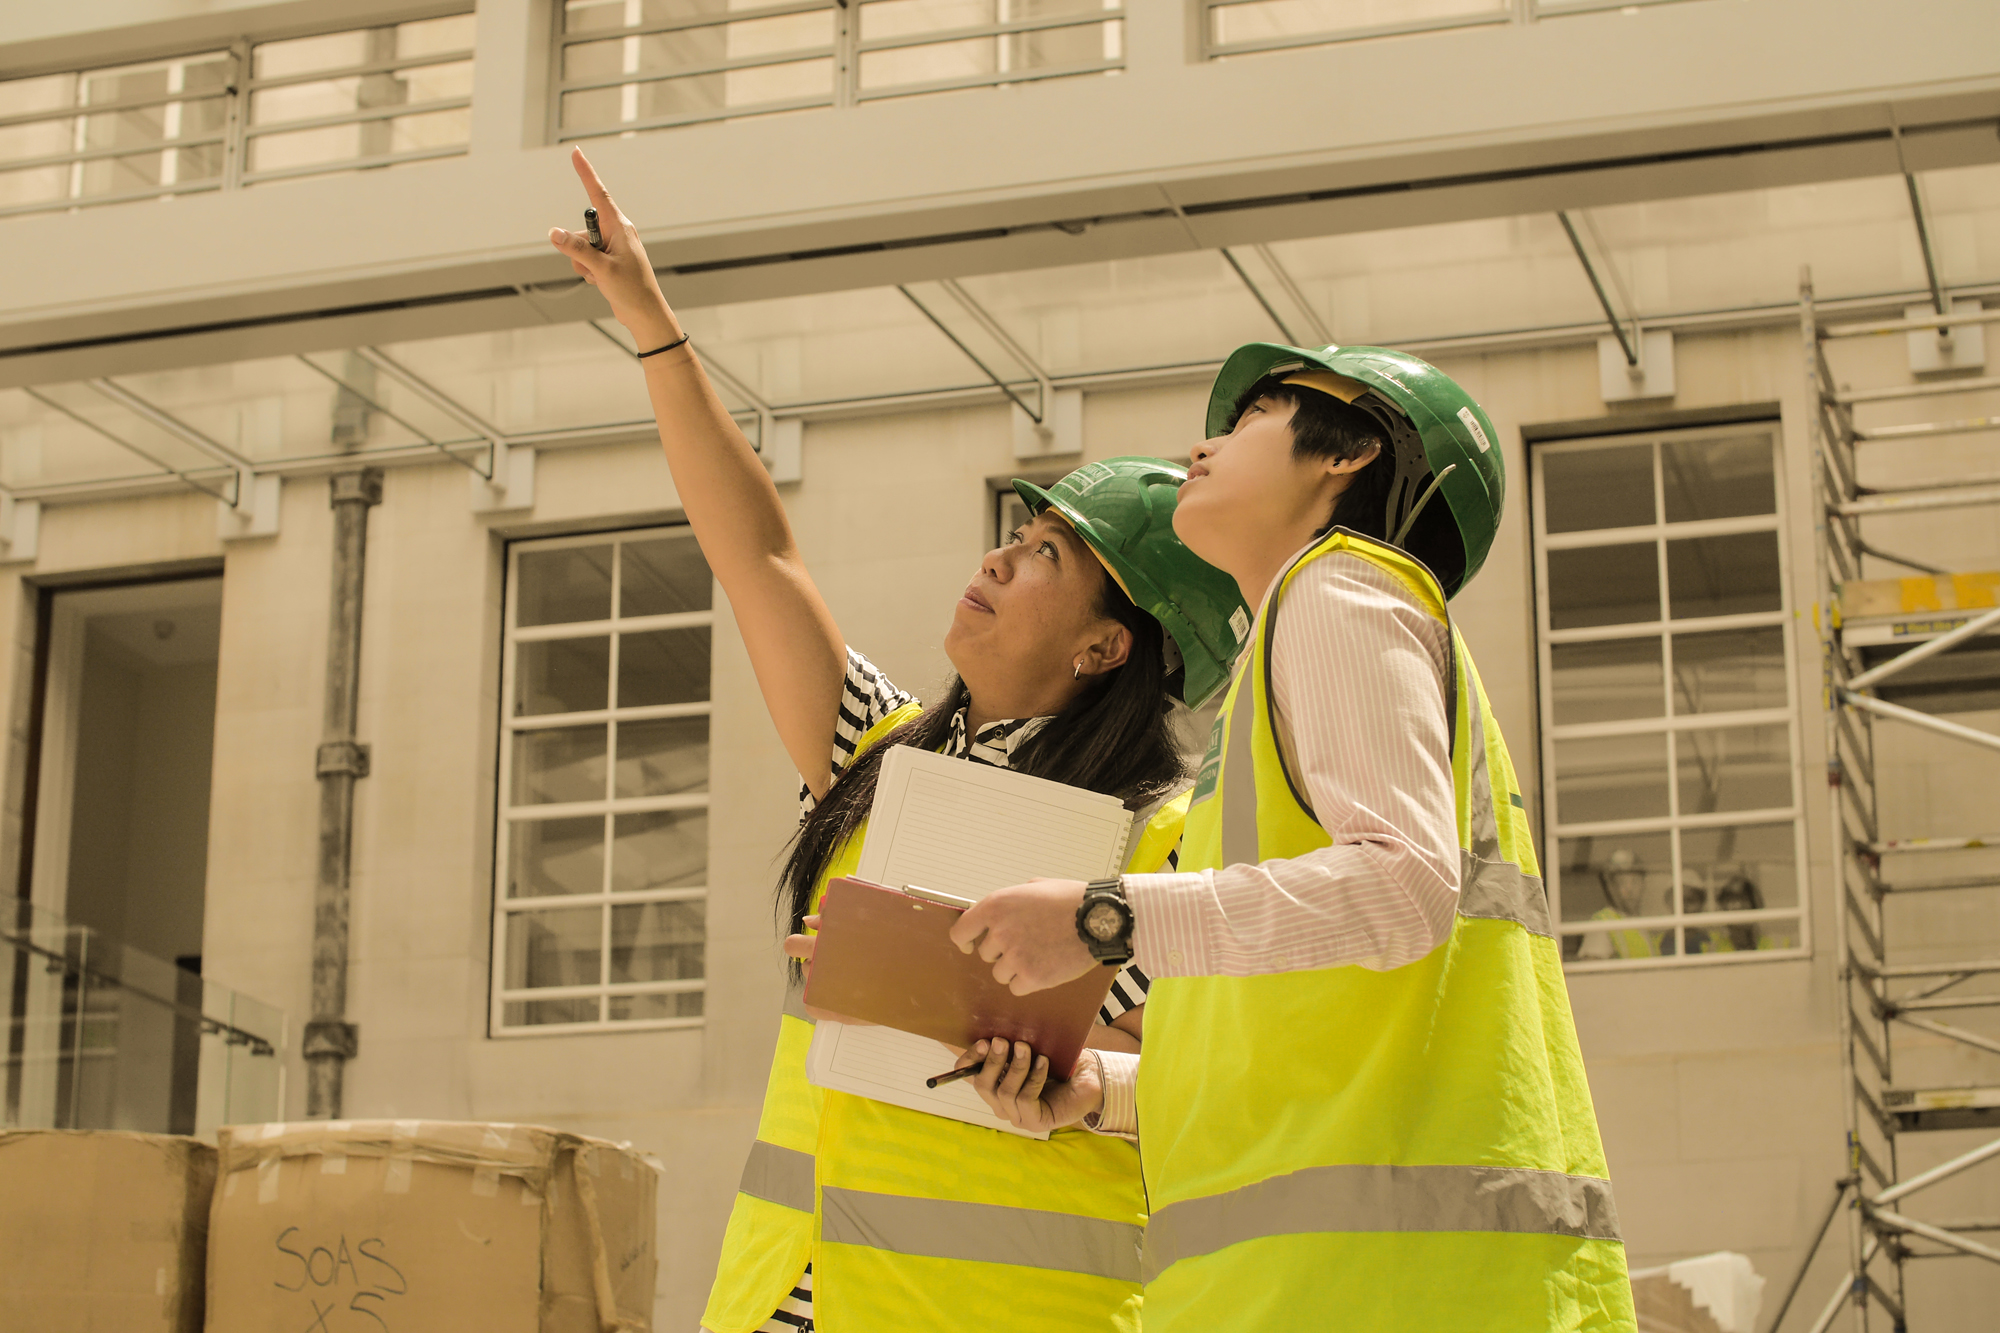 Construction industry aims to tackle skills shortages with Fairness, Inclusion & Respect